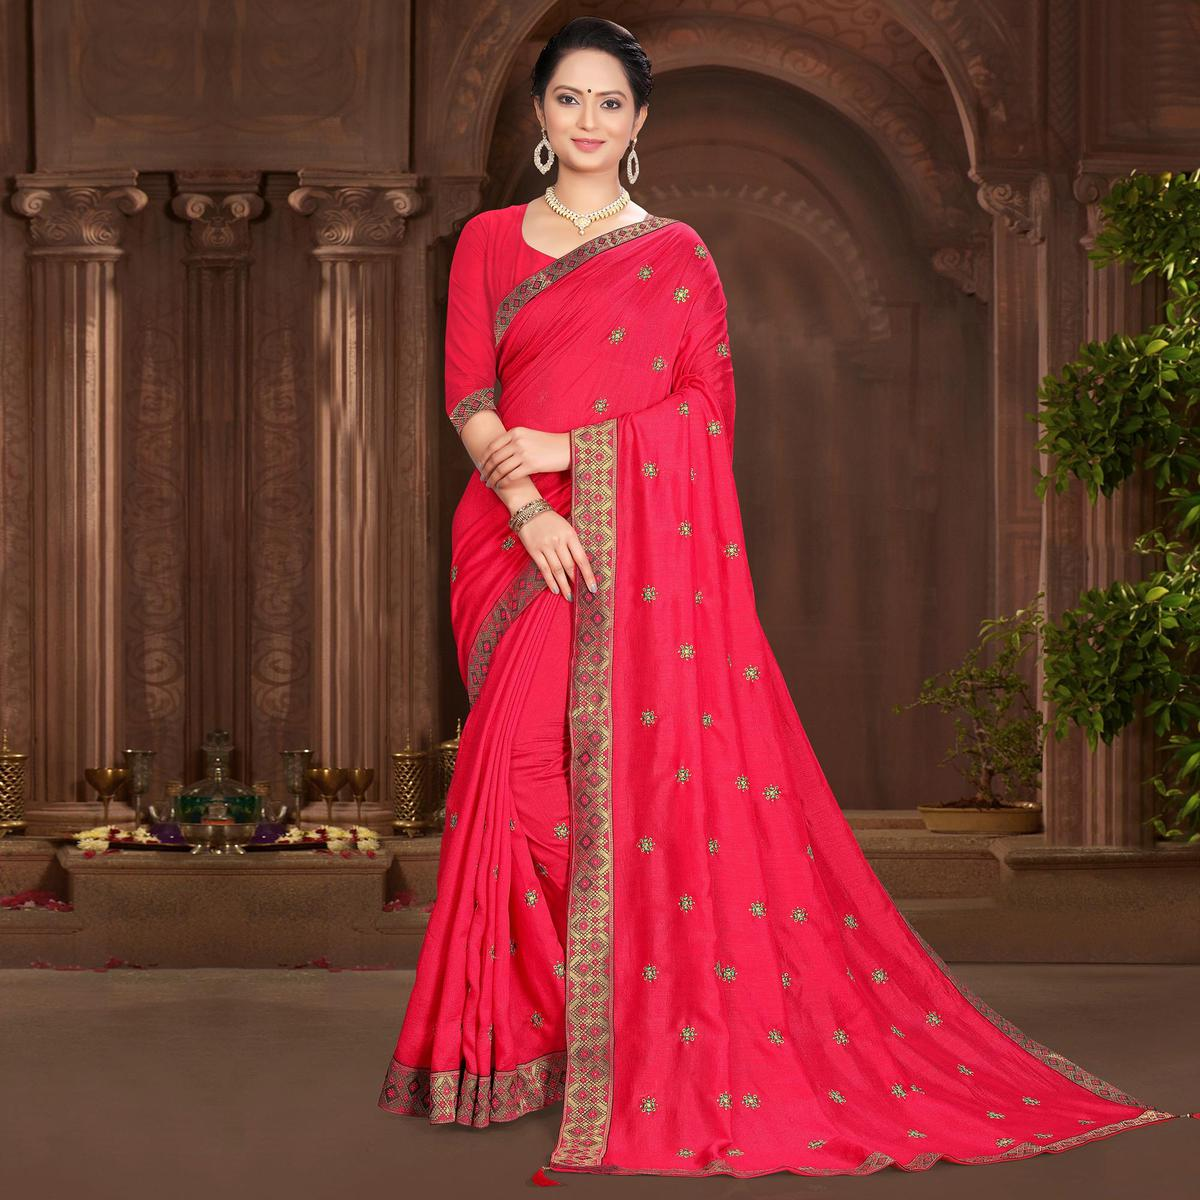 Indian Women Casual Wear Pink Vichitra Silk Lace With Embroidery Designer Saree